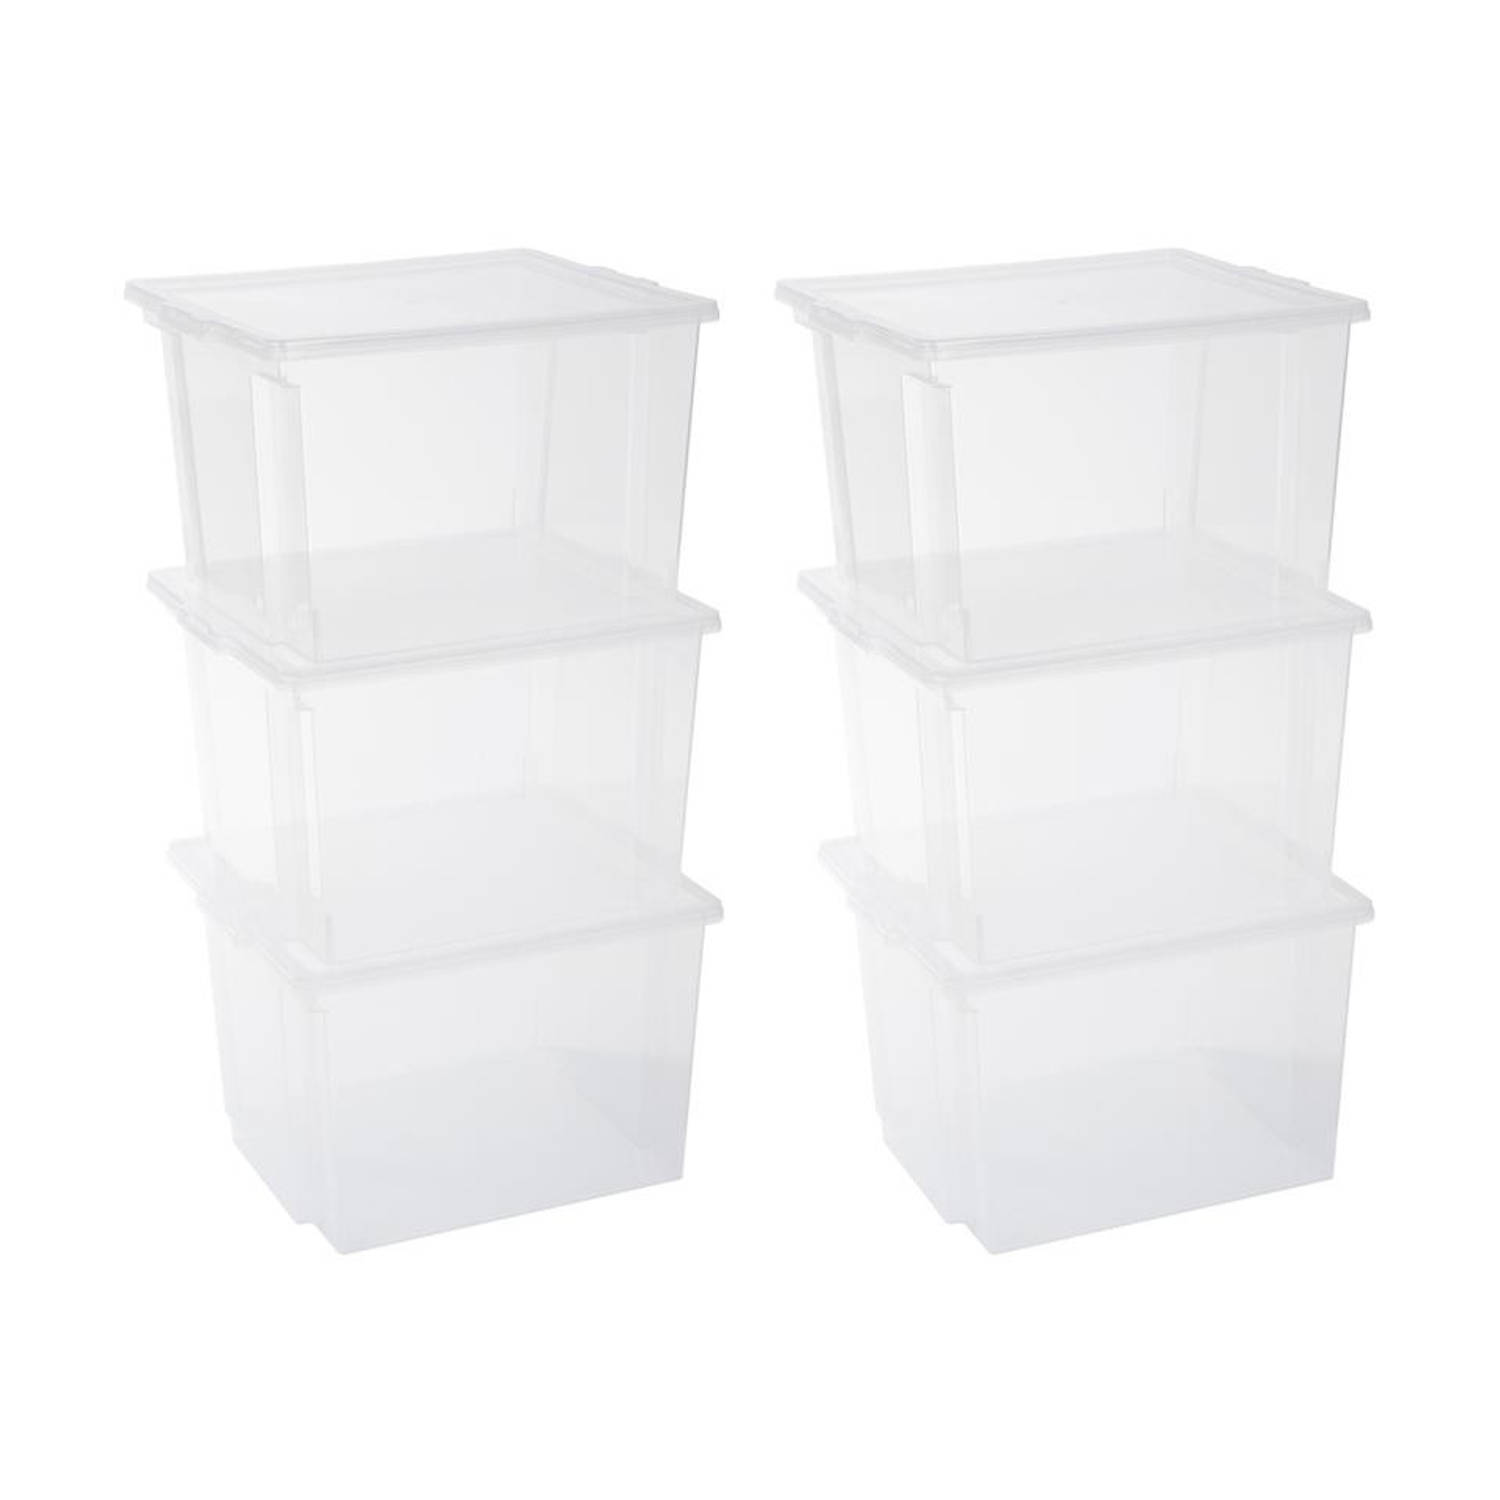 Iris Storage Box opbergbox - 30 liter - transparant - set van 6